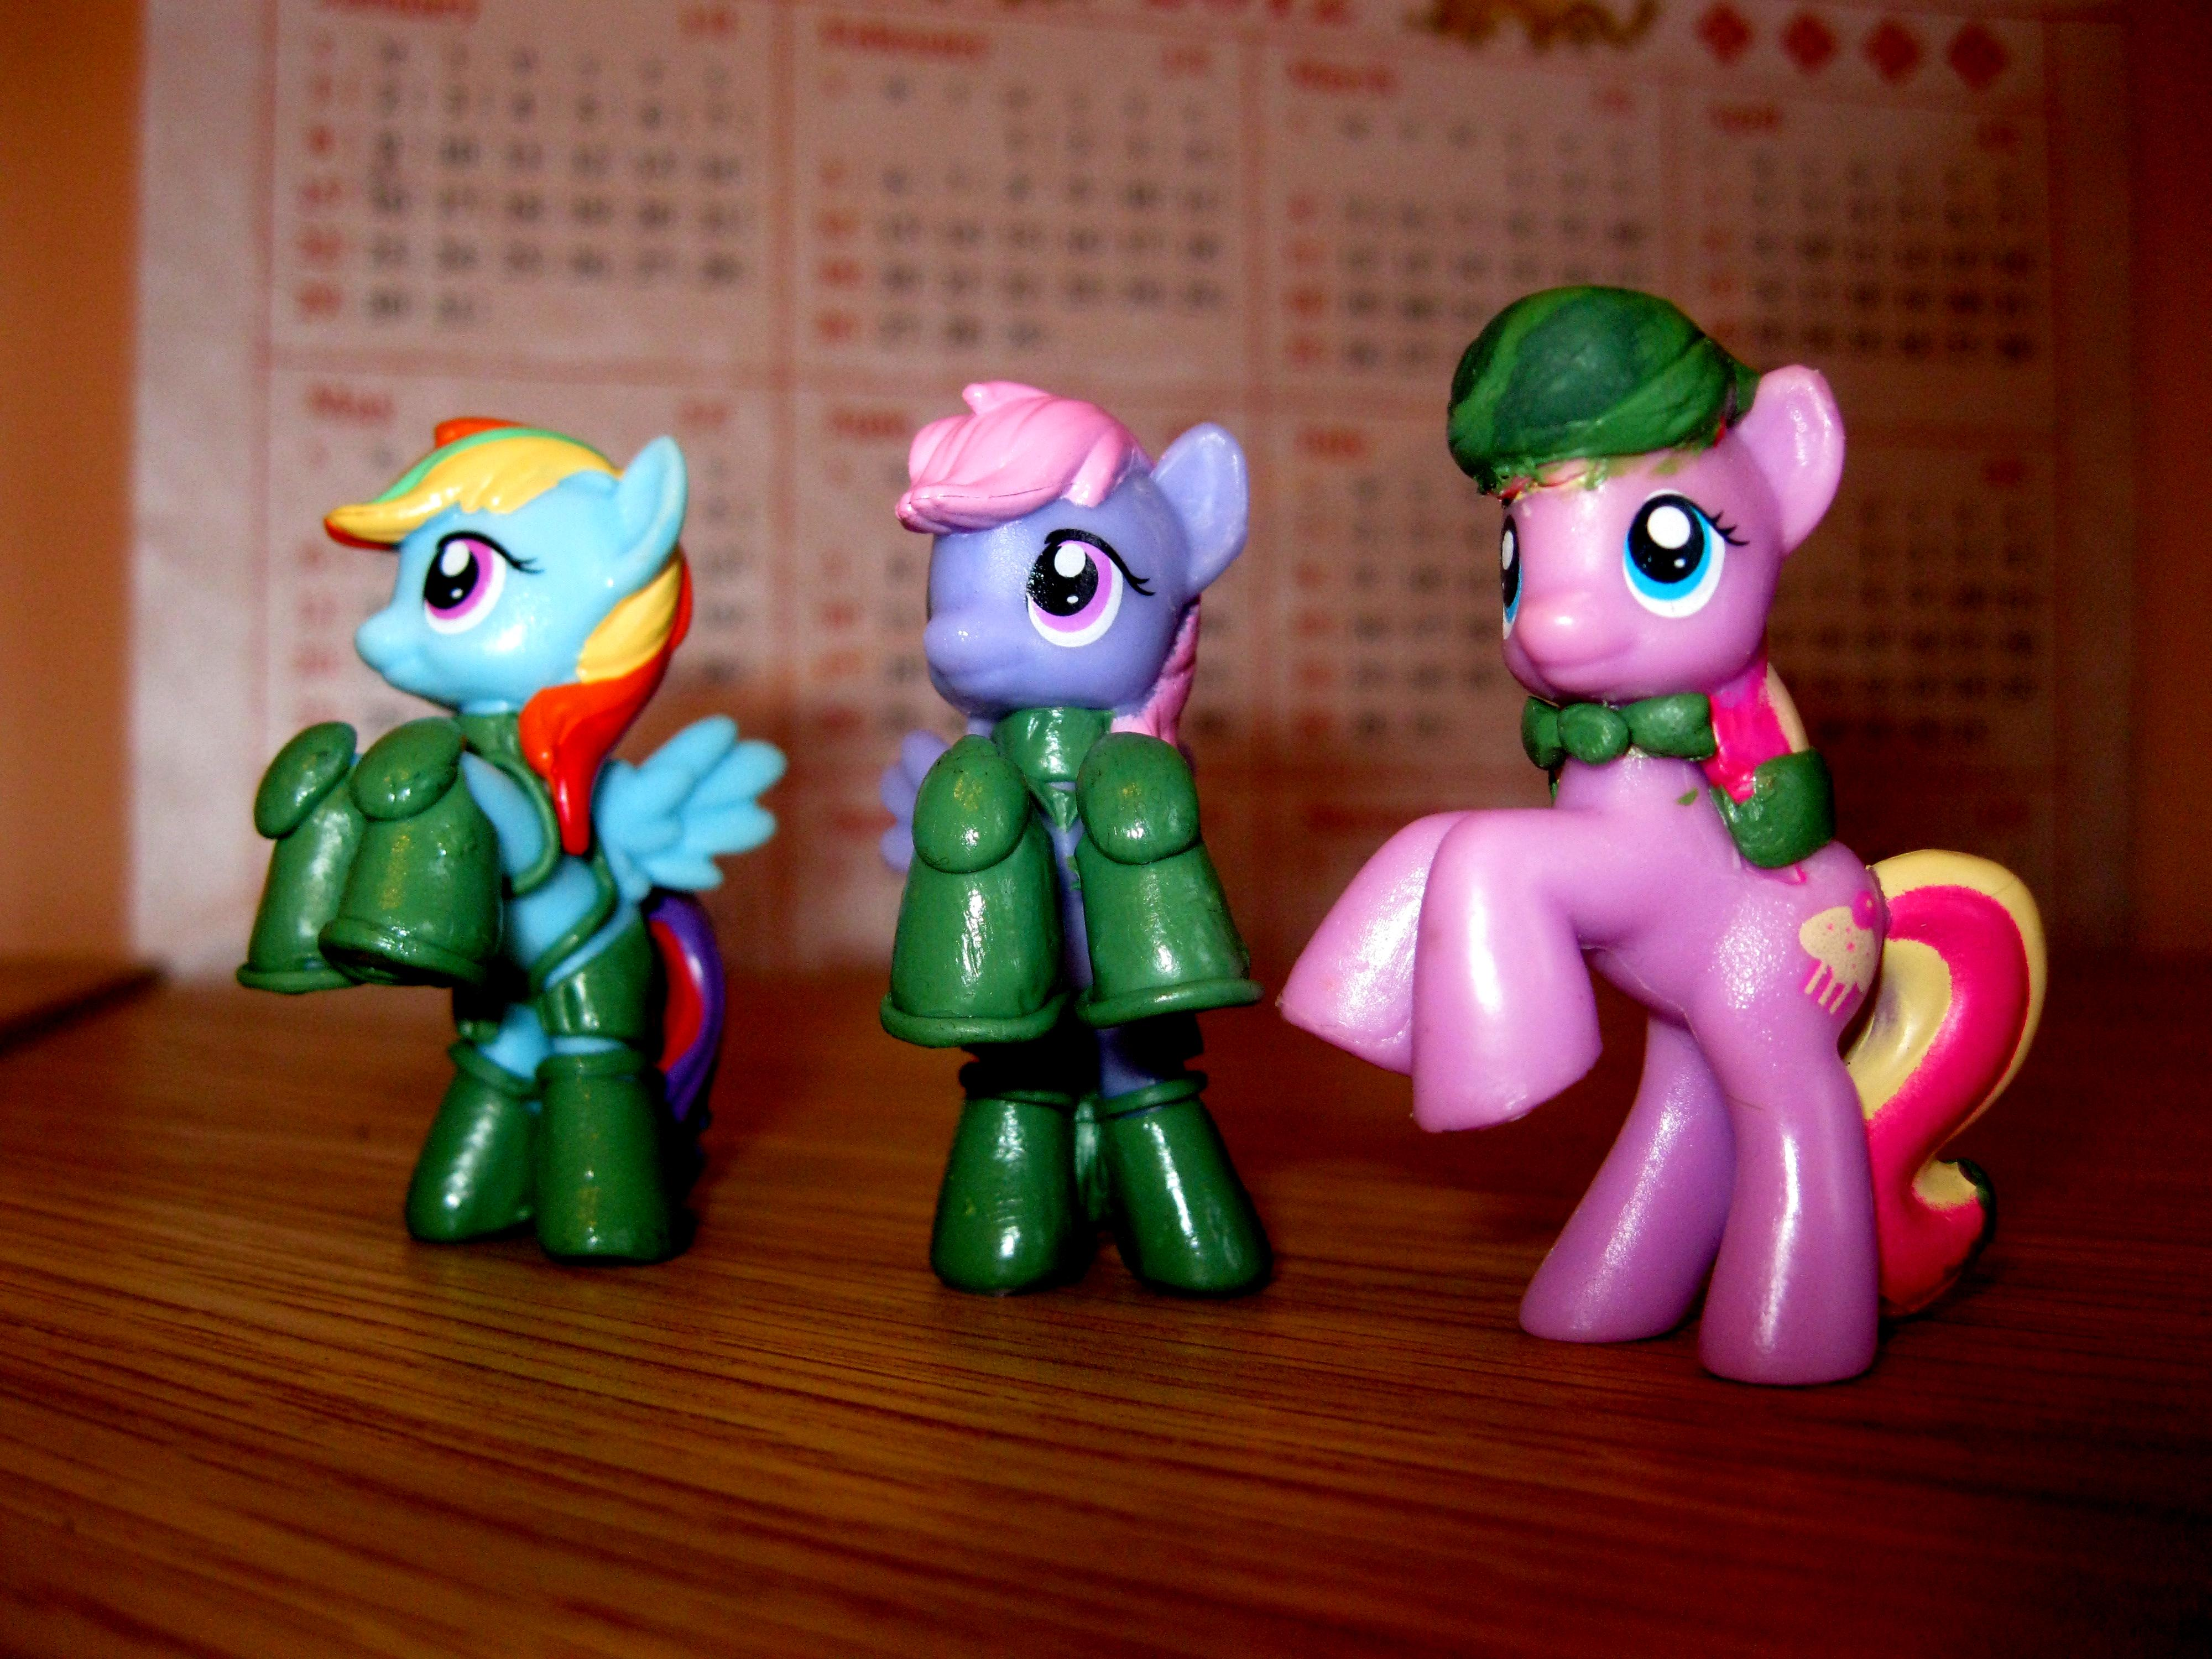 Cute, Greenstuff, Humor, My Little Pony, Sculpting, Space Marines, Stupid